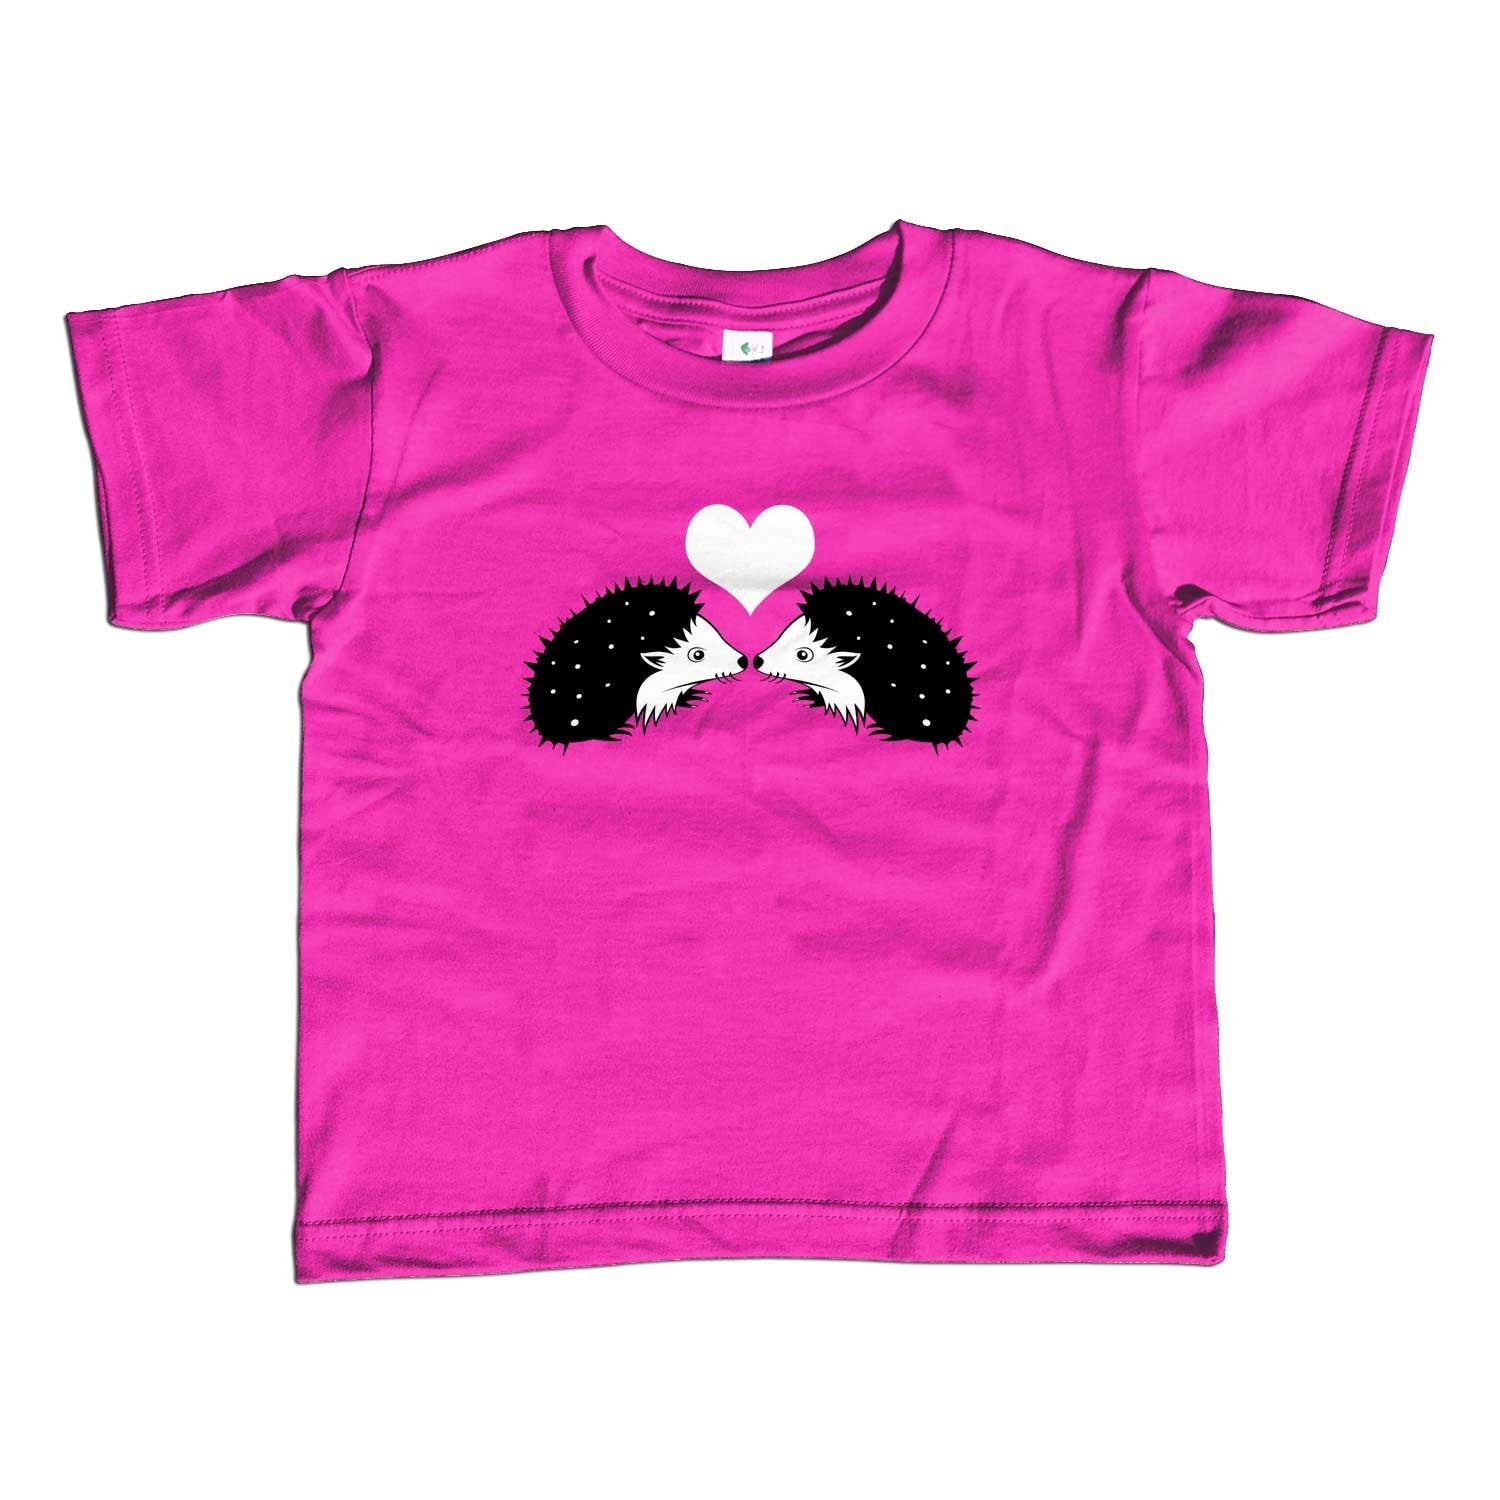 Girl's Hedgehogs in Love T-Shirt - Unisex Fit